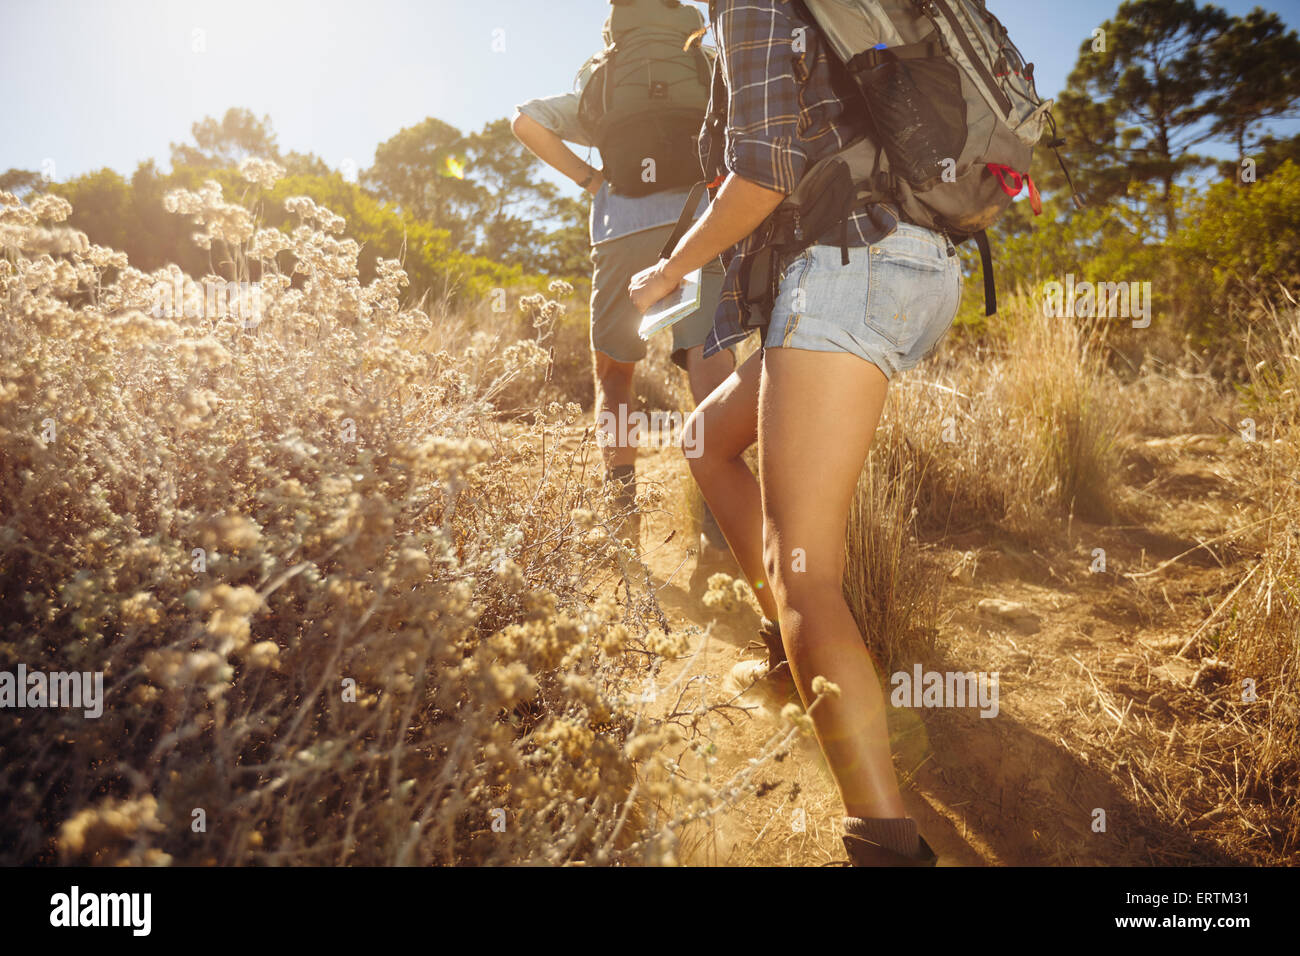 Cropped image of man and woman walking on country trail path. Young couple hiking on mountain on sunny day. - Stock Image